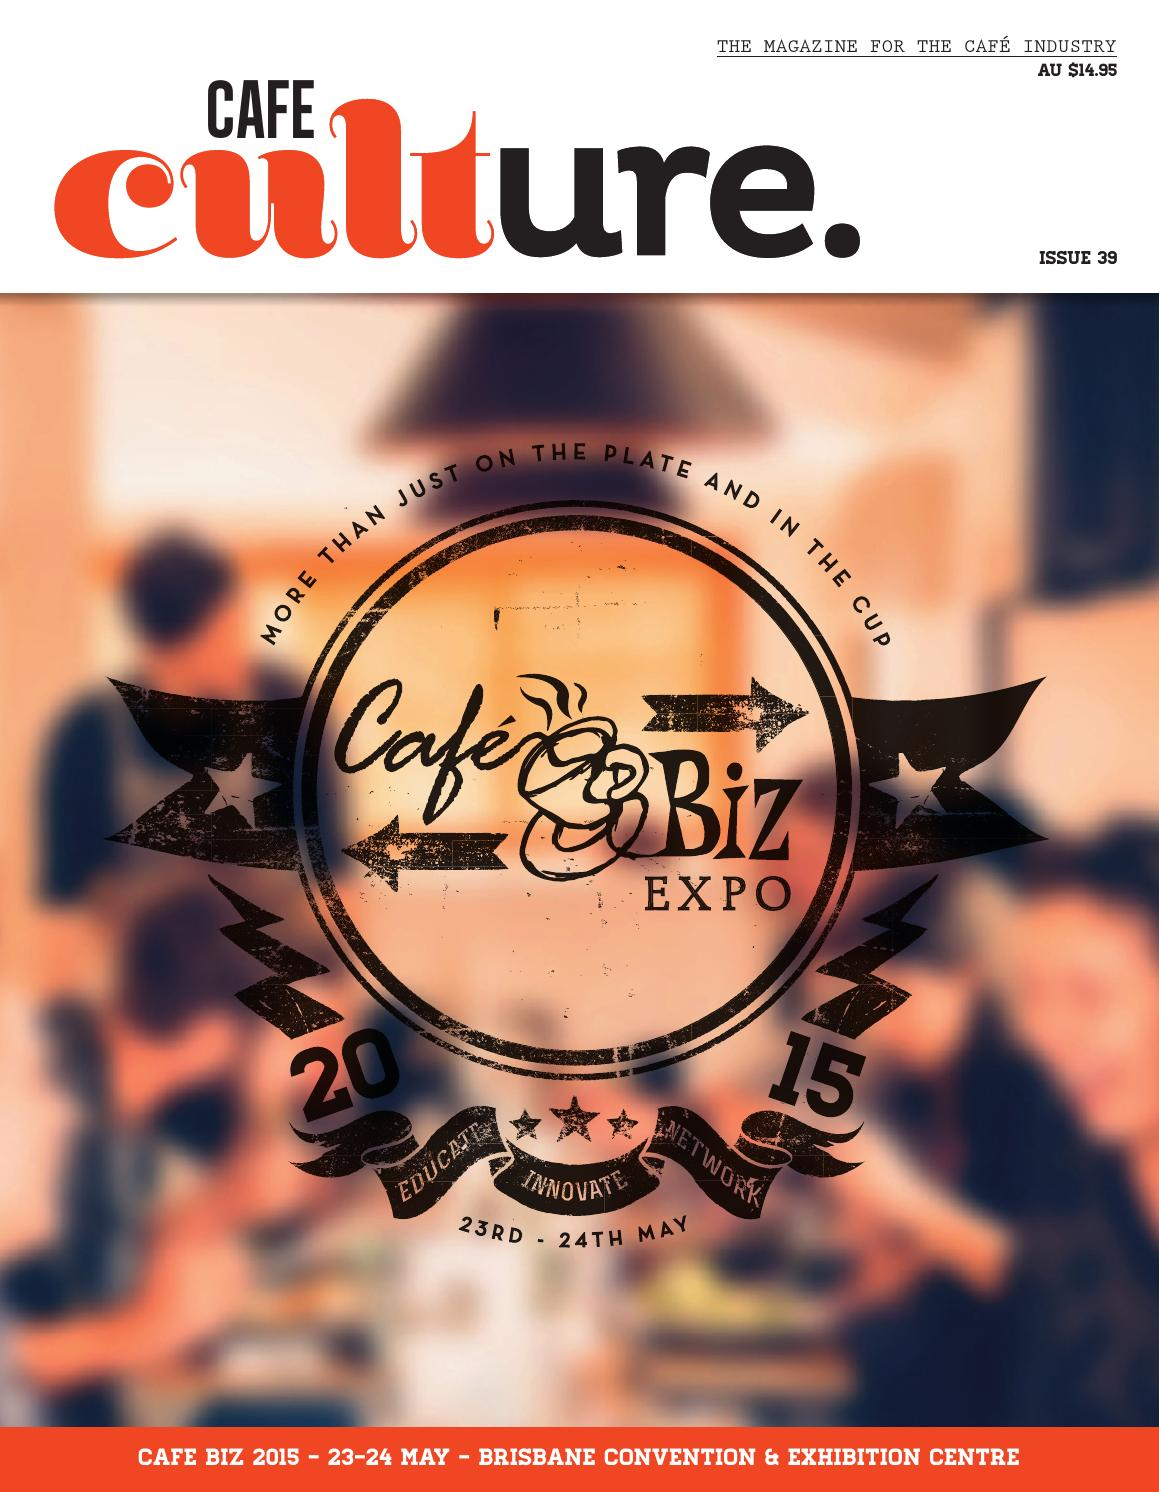 Cafe culture issue 37 by cafe culture issuu cafe culture issue 39 fandeluxe Image collections